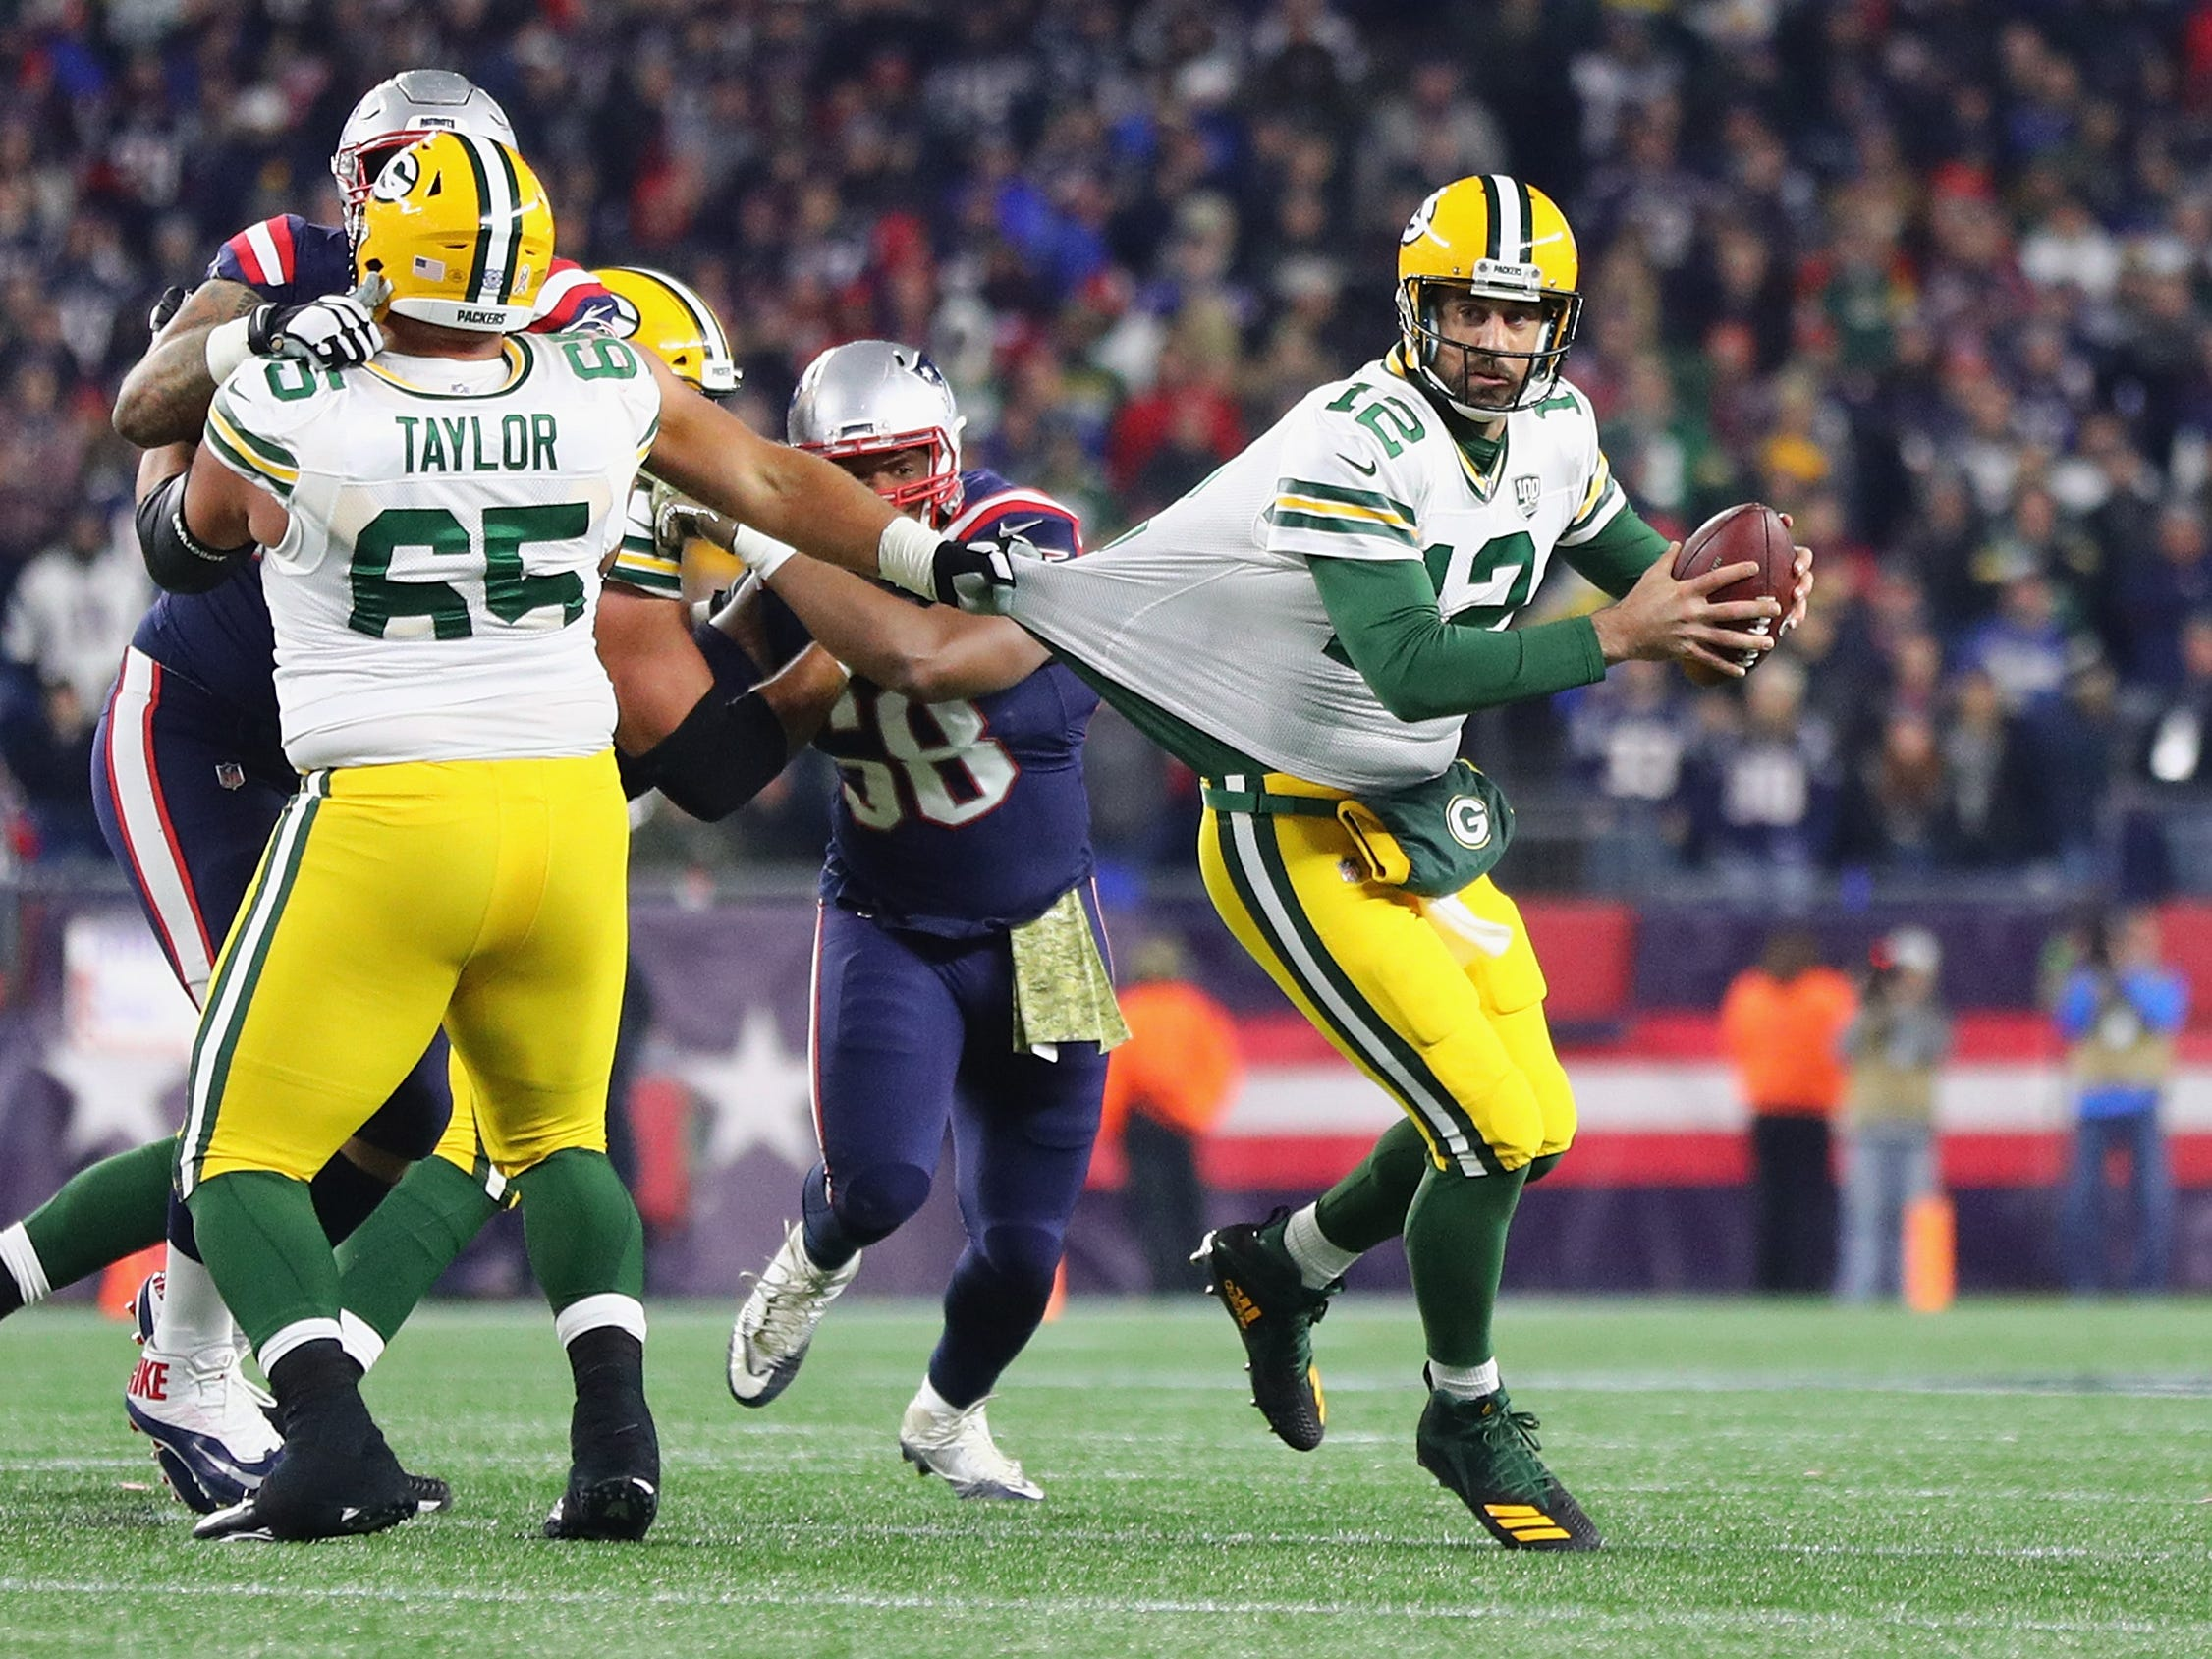 FOXBOROUGH, MA - NOVEMBER 04:  Aaron Rodgers #12 of the Green Bay Packers looks to pass the ball as his jersey is grabbed by Lawrence Guy #93 of the New England Patriots during the second half at Gillette Stadium on November 4, 2018 in Foxborough, Massachusetts.  (Photo by Maddie Meyer/Getty Images)